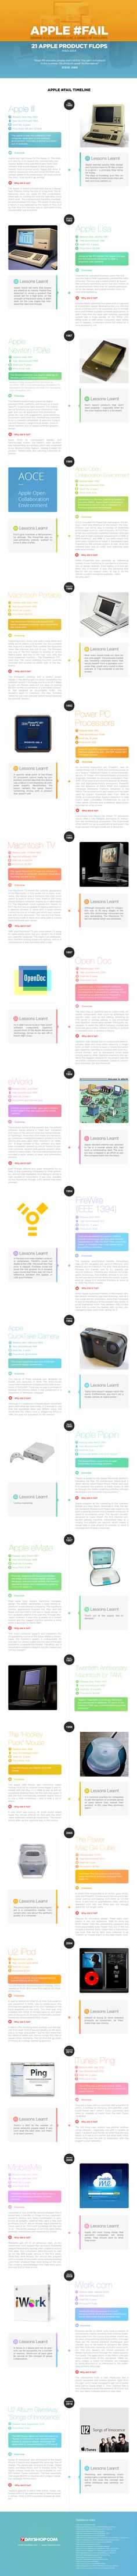 Apple #Fail Infographic